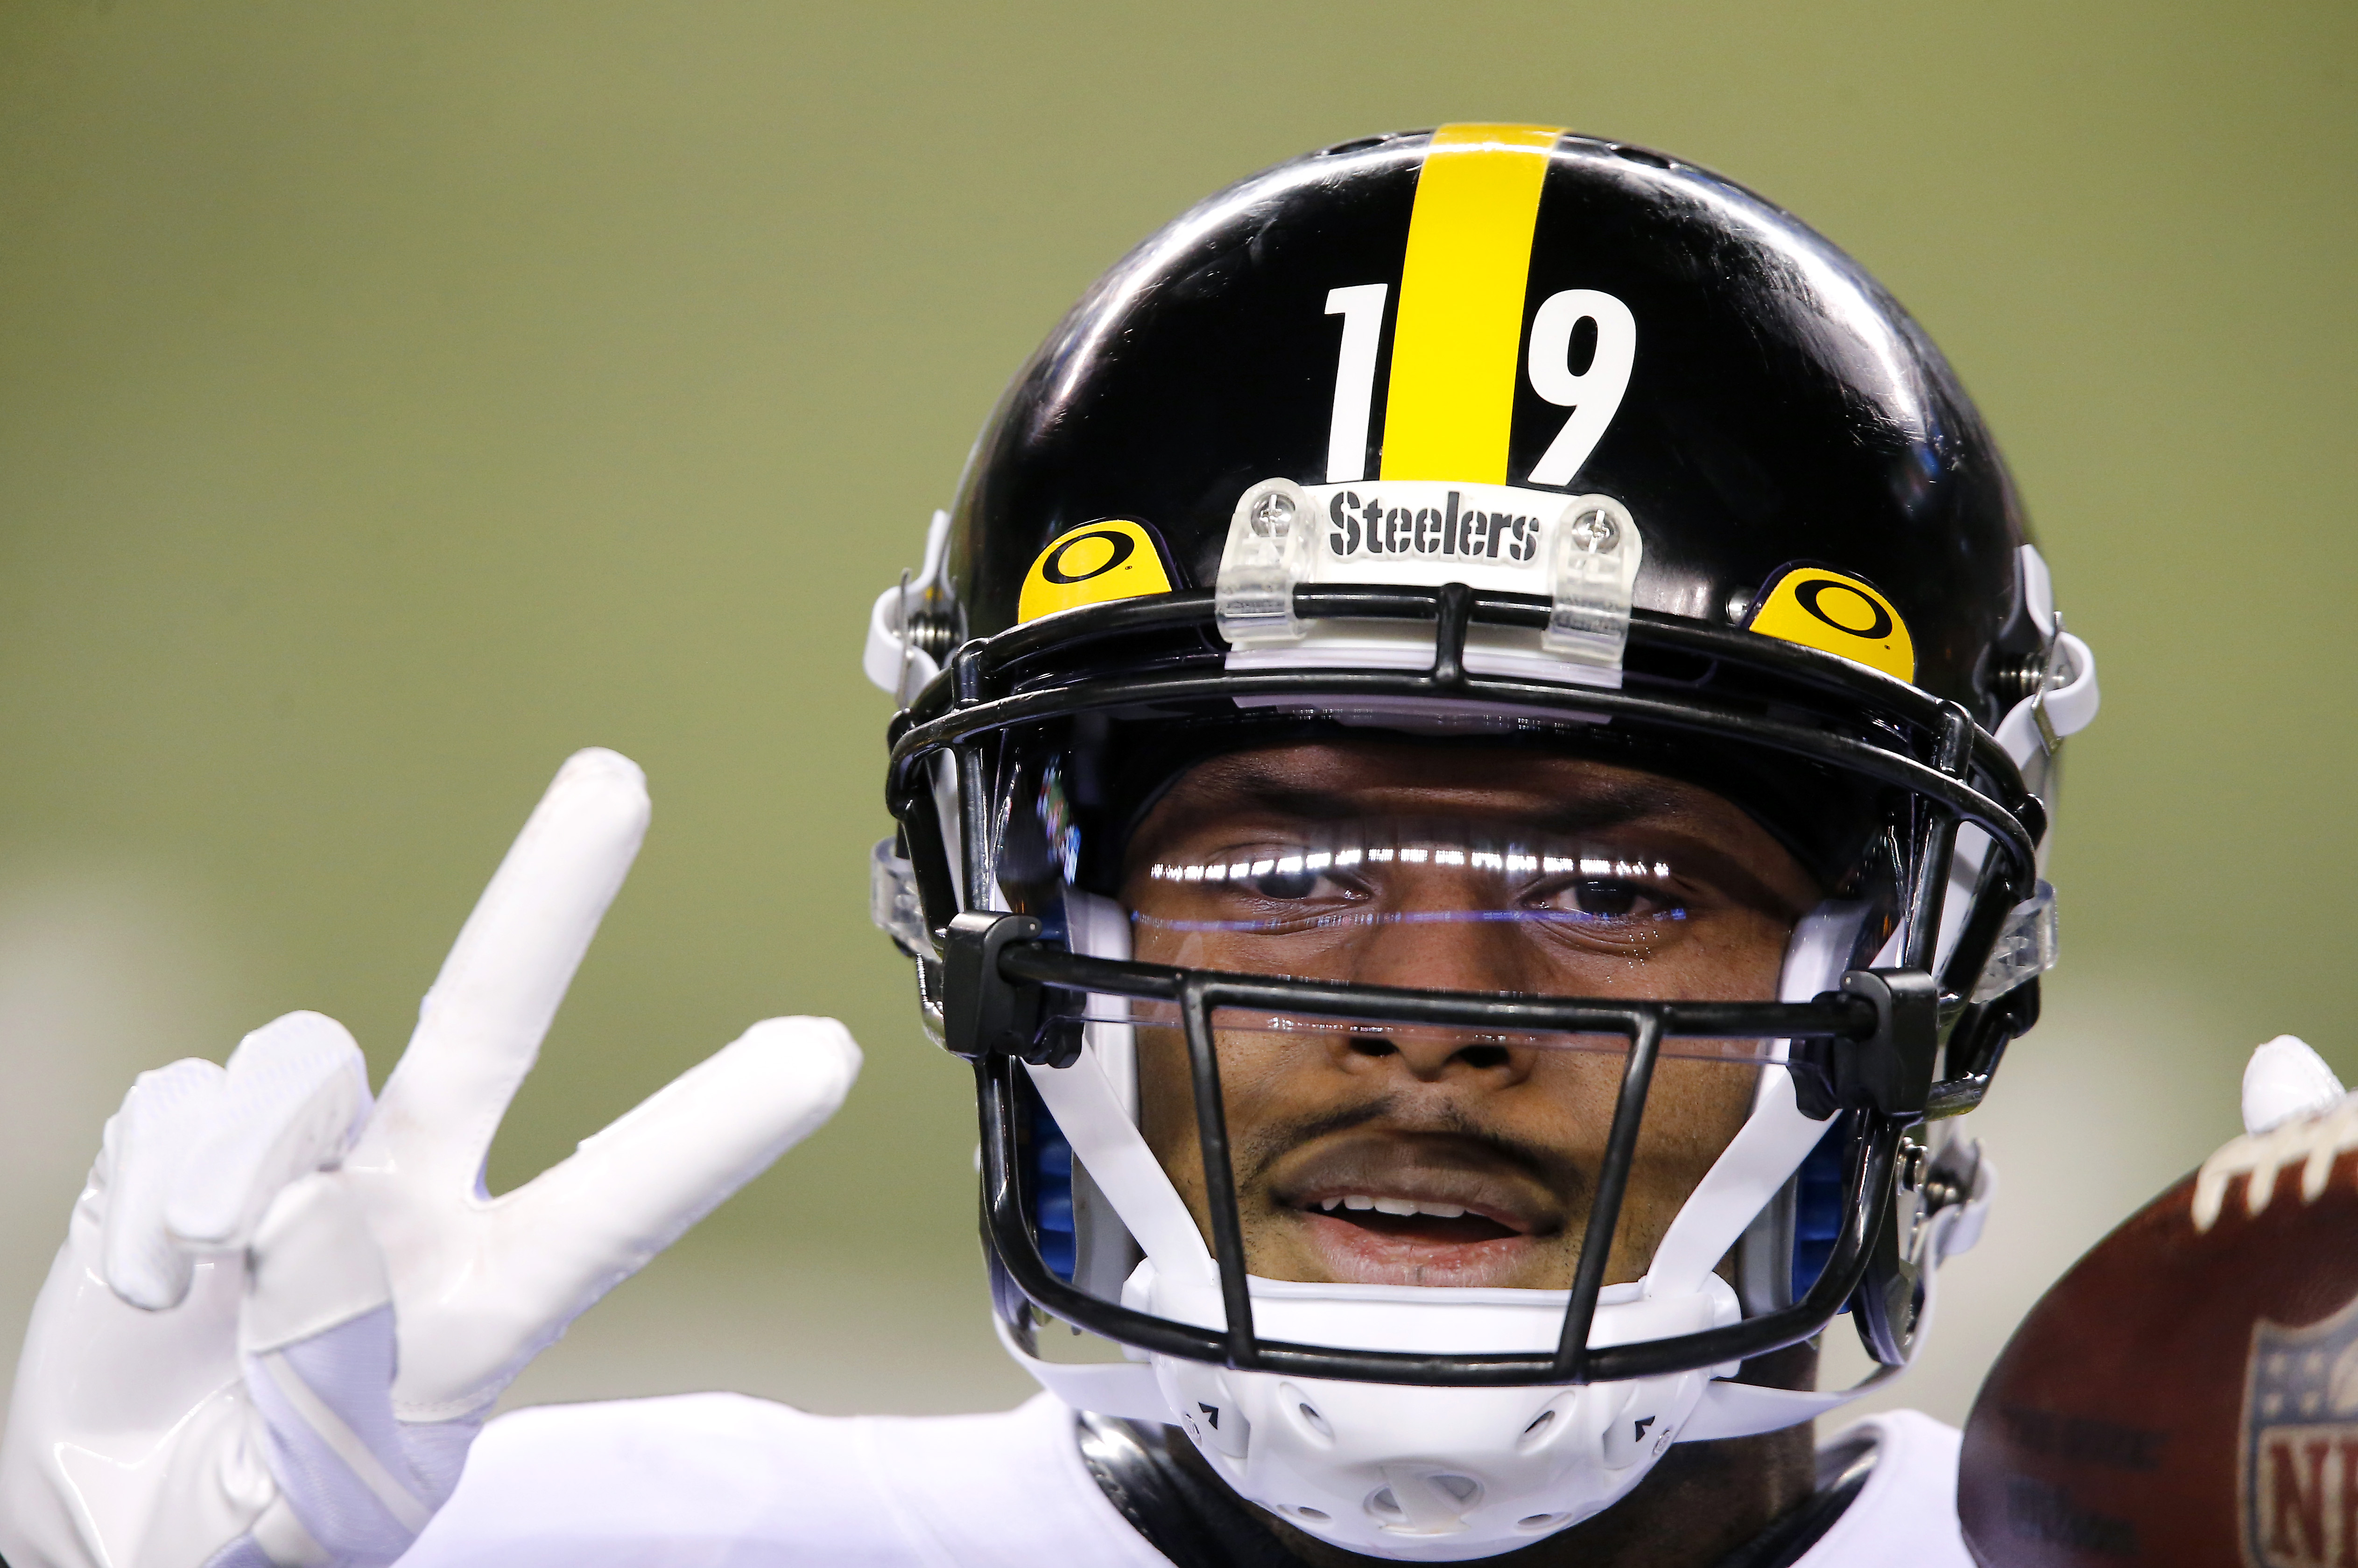 Pittsburgh Steelers wide receiver JuJu Smith-Schuster (19) warms up before the game against the Cincinnati Bengals at Paul Brown Stadium.